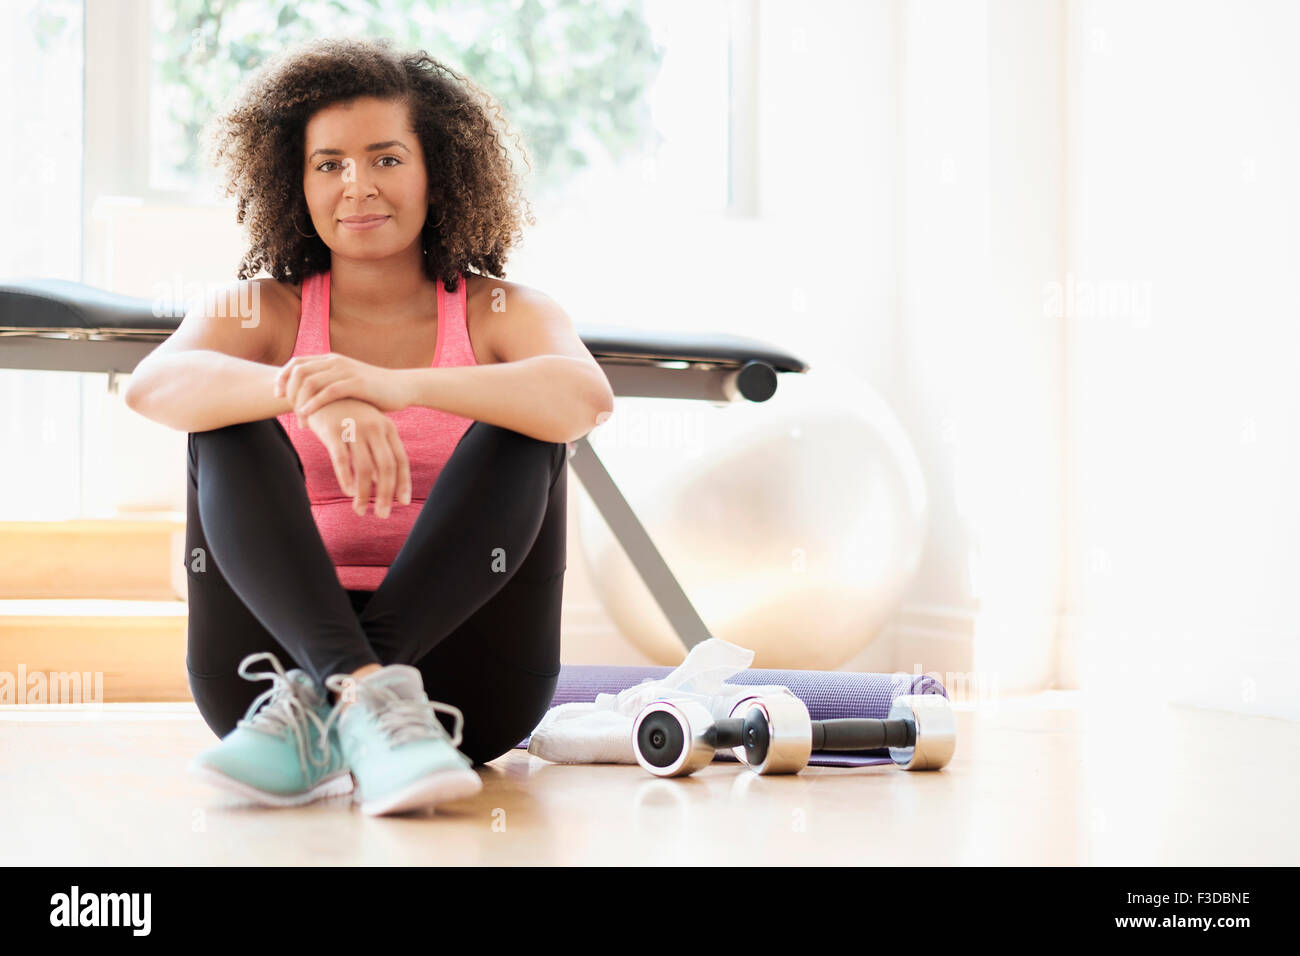 Portrait of young woman at gym - Stock Image